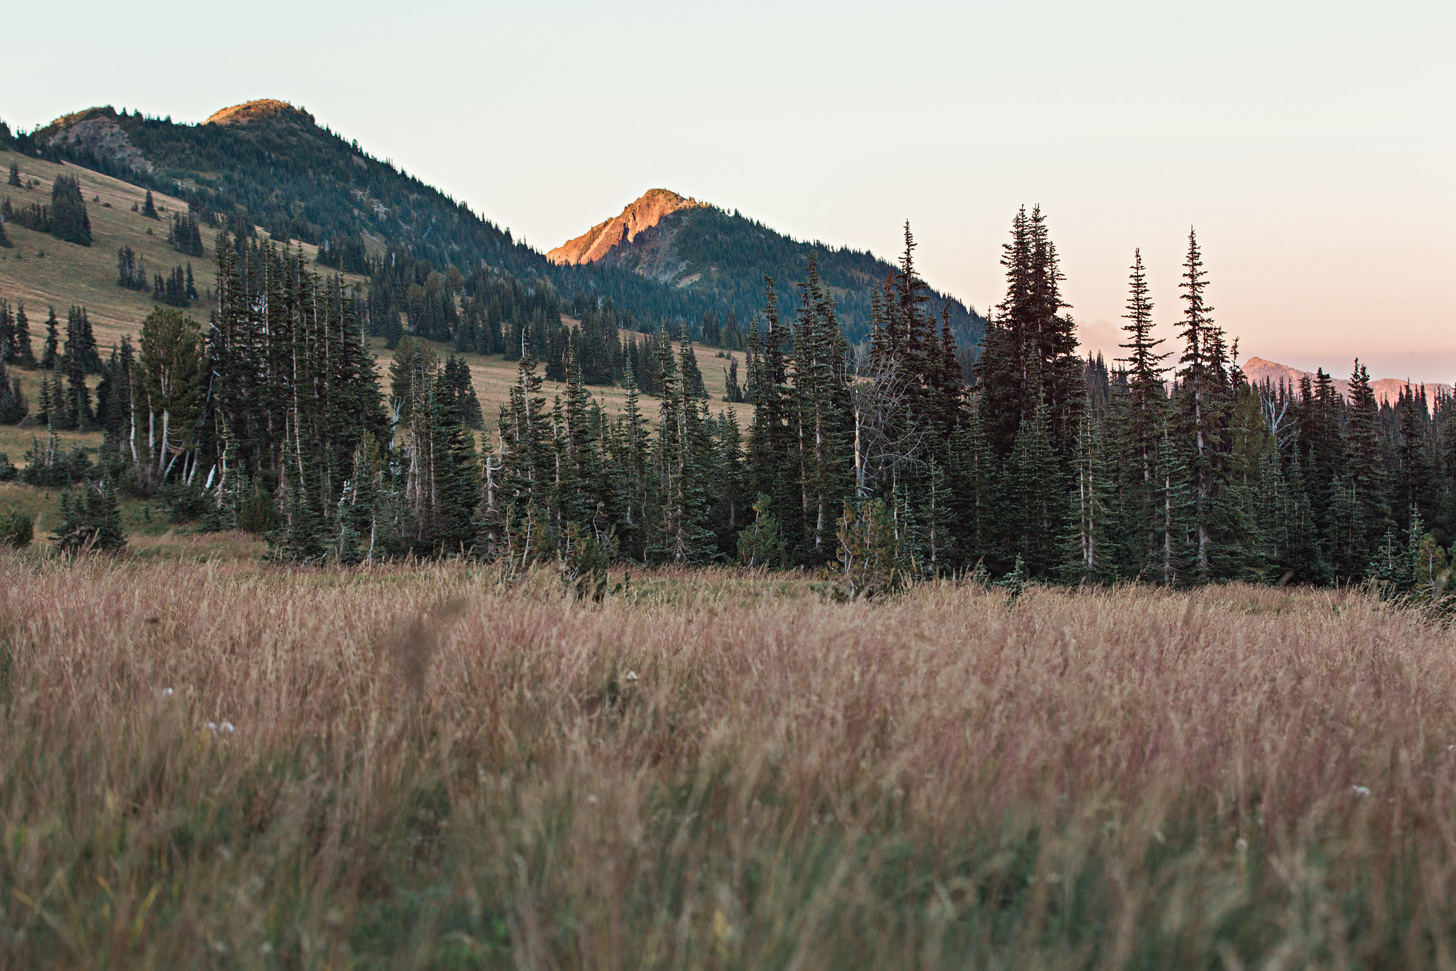 CindyGiovagnoli_Mount_Rainier_National_Park_Washington-035.jpg